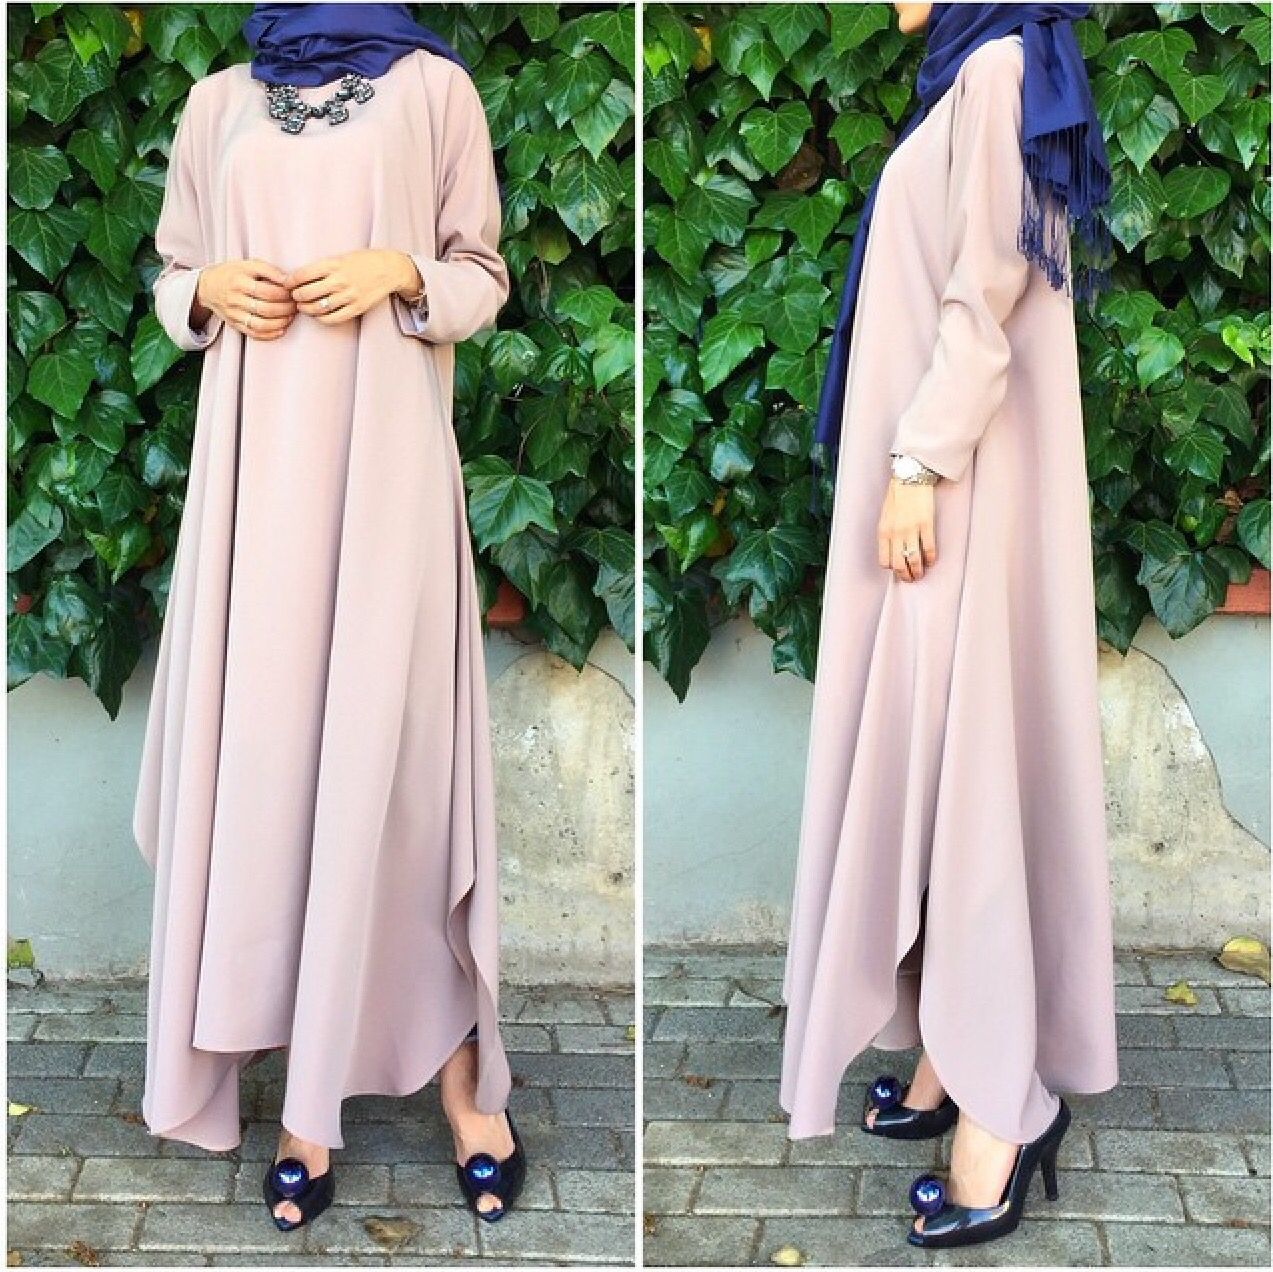 Pin By Iffah Fathin On Style: Hijab Fashion, Duster Coat, Fashion